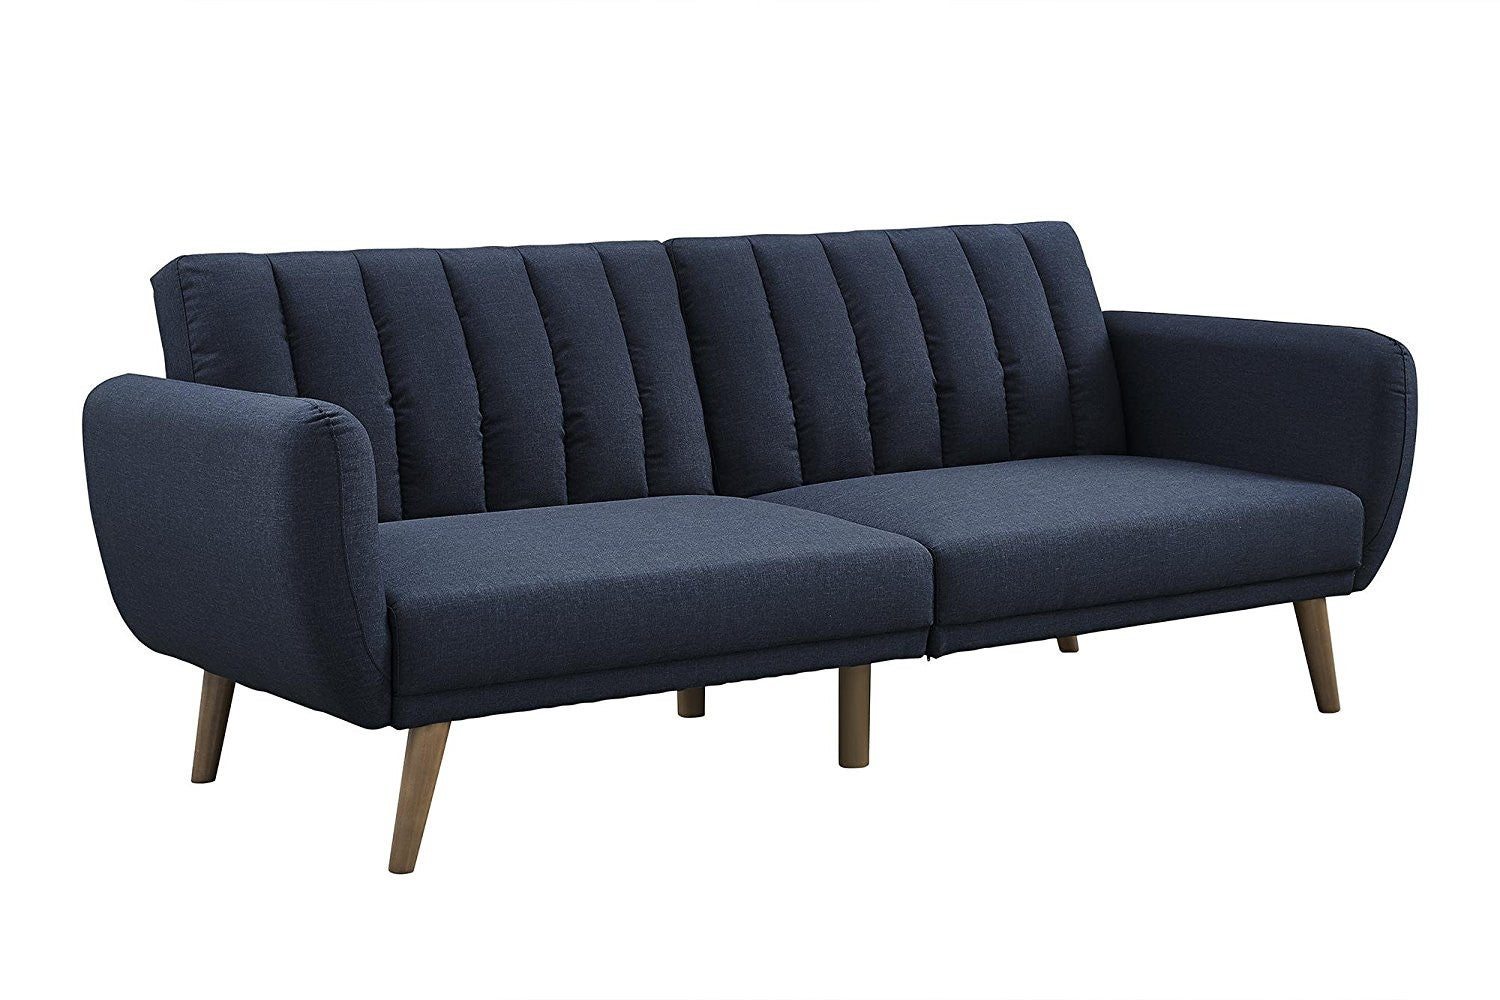 Excellent 12 Inexpensive Couches That Look Like Theyre A Splurge Pabps2019 Chair Design Images Pabps2019Com